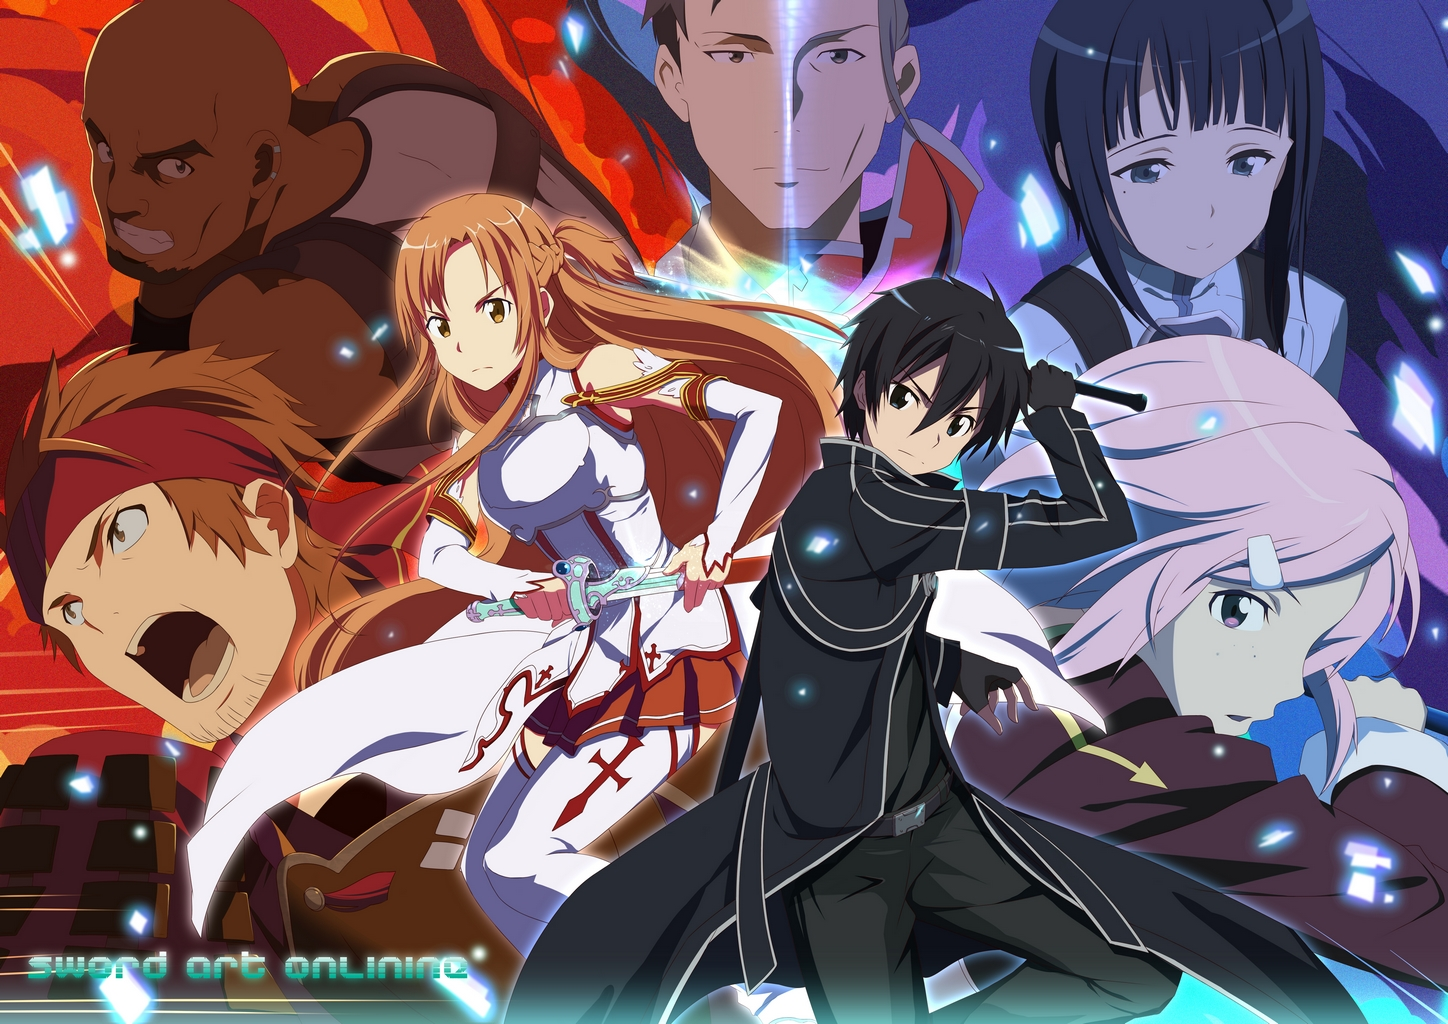 Sword Art Online S1 BD Batch Subtitle Indonesia [x265]